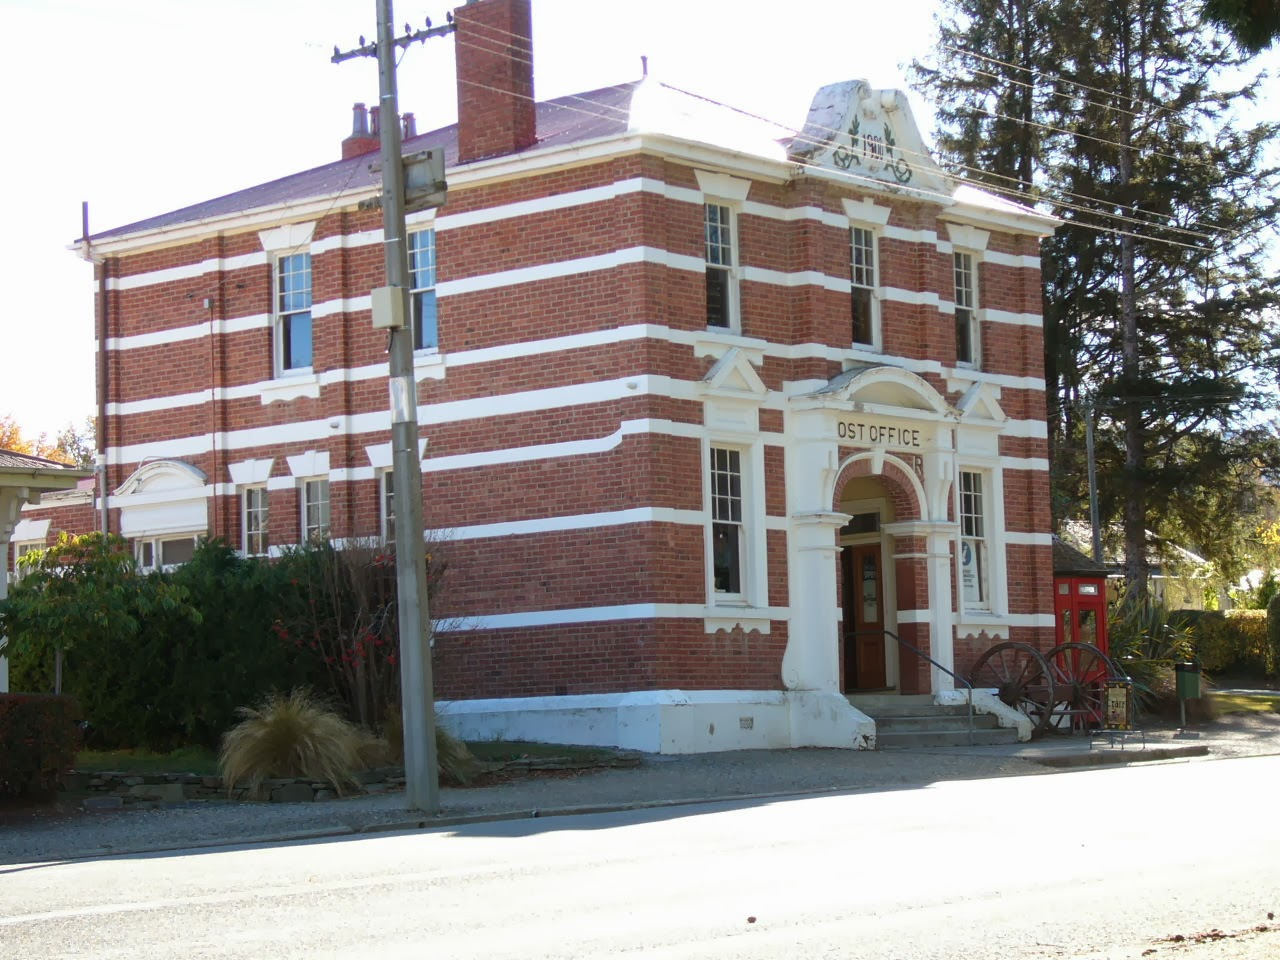 Photo: Naseby Post Office building